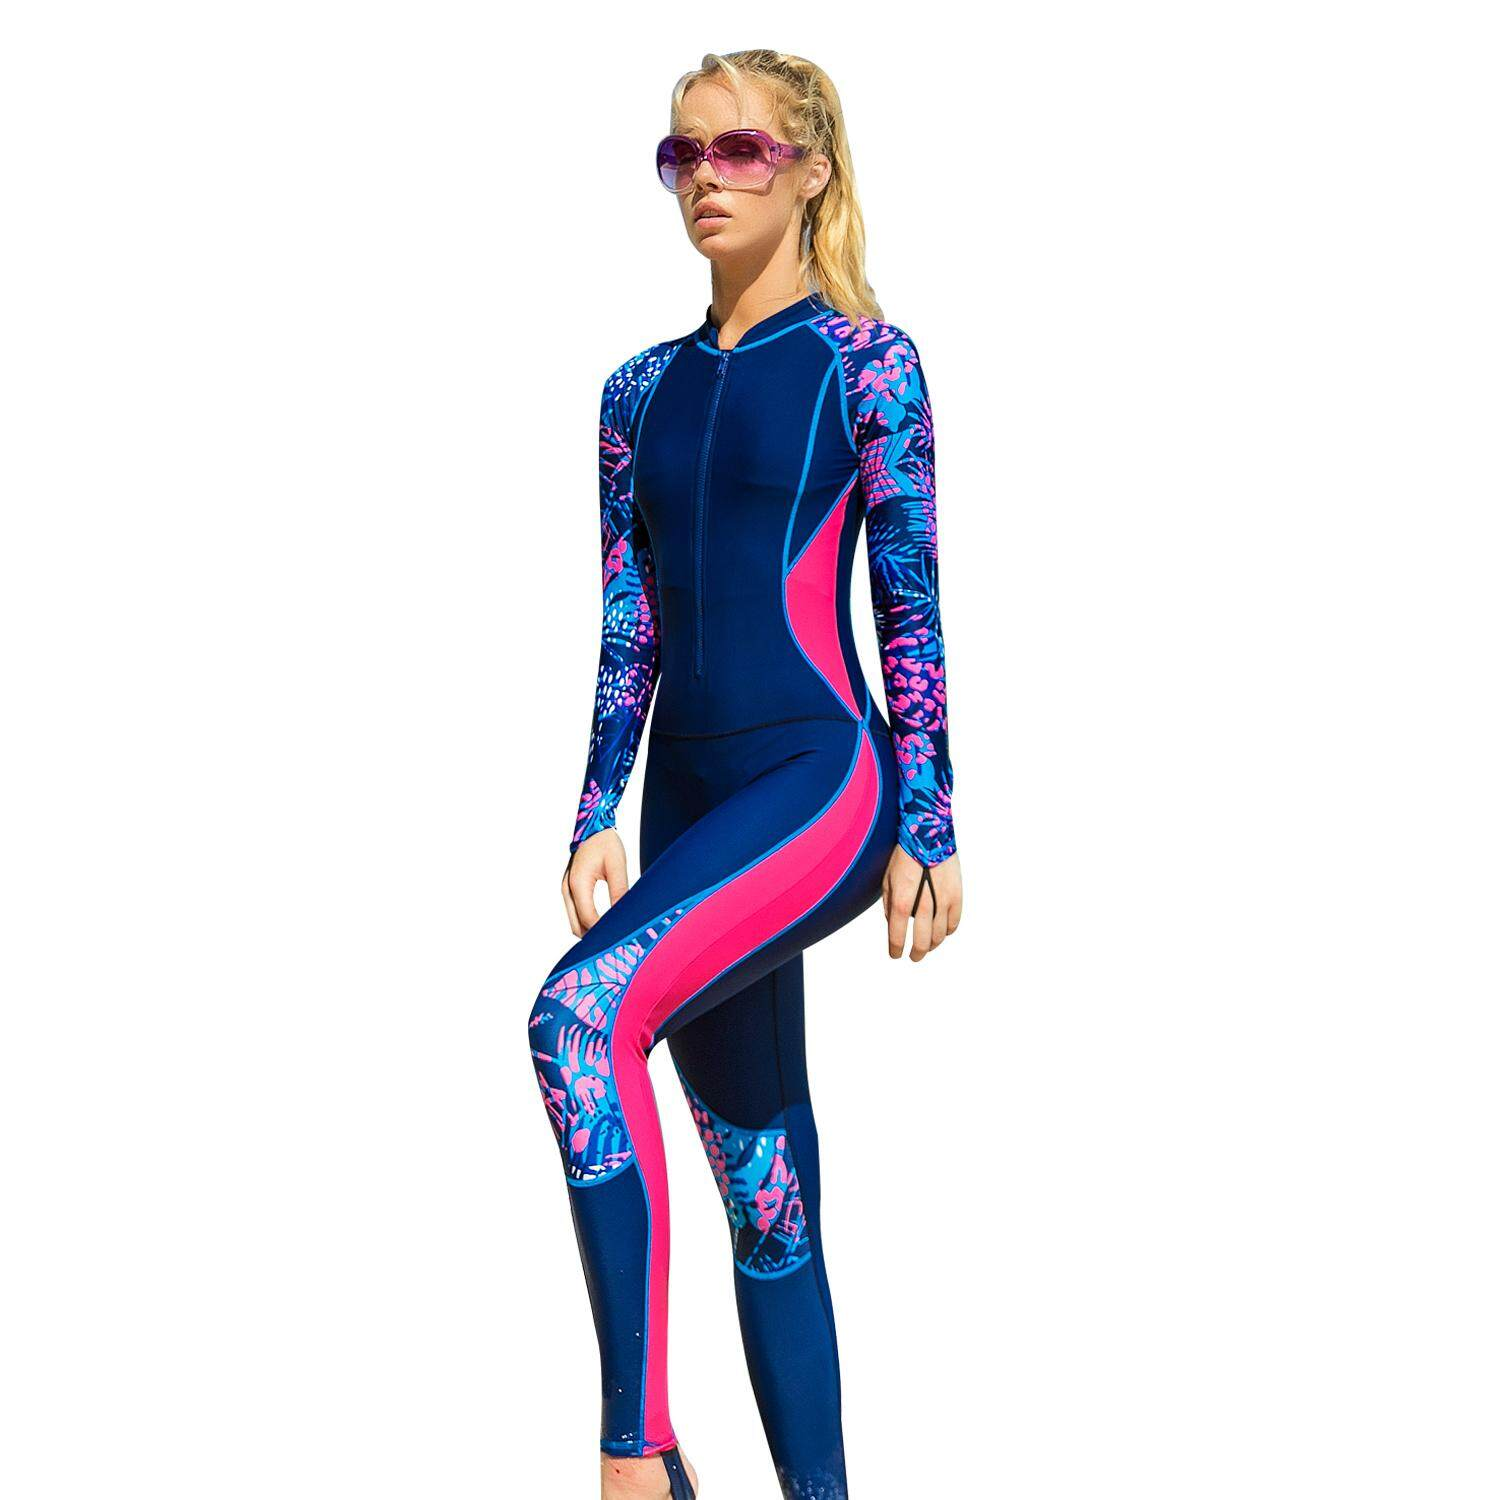 c8fbfec6a0 Sbart Womens One Piece Full Body UV Protection Rash Guard Snorkeling  Jumpsuit Diving Wet Suit Quick